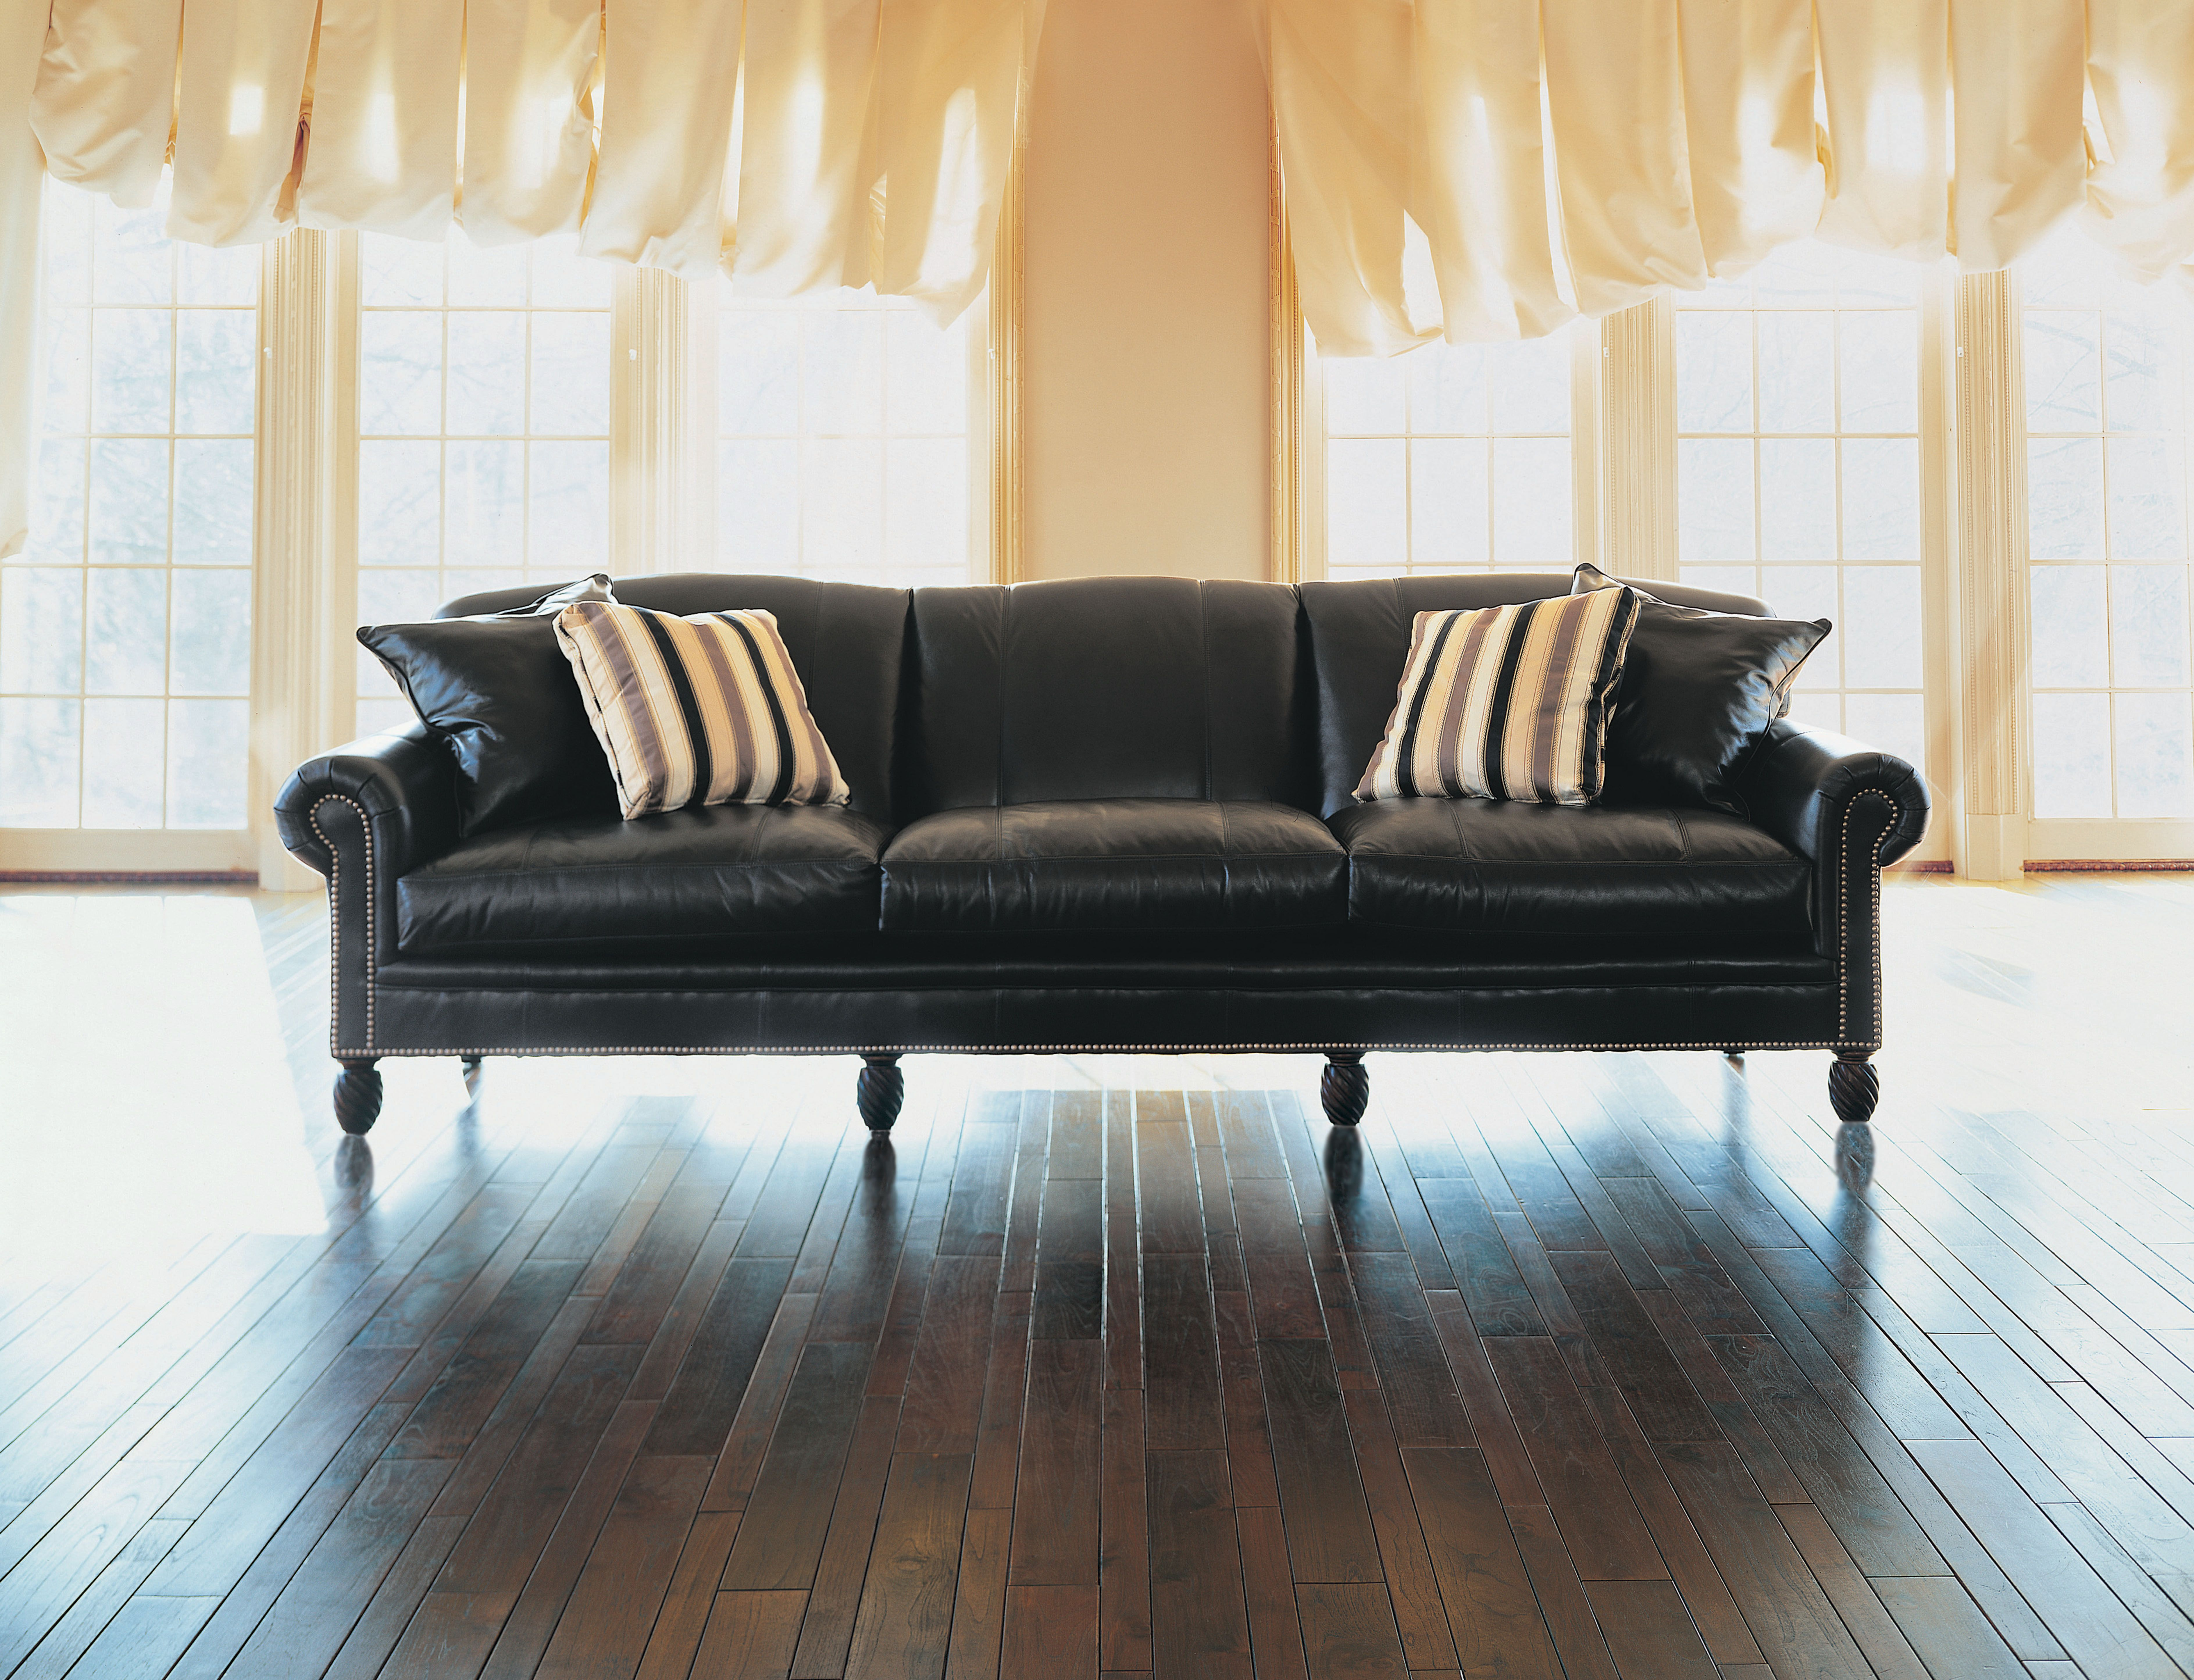 72 lancaster leather sofa long sectional canada grey ekenasfiber johnhenriksson se the day of rest keep it classy and relaxed y all rh pinterest com faux palliser furniture